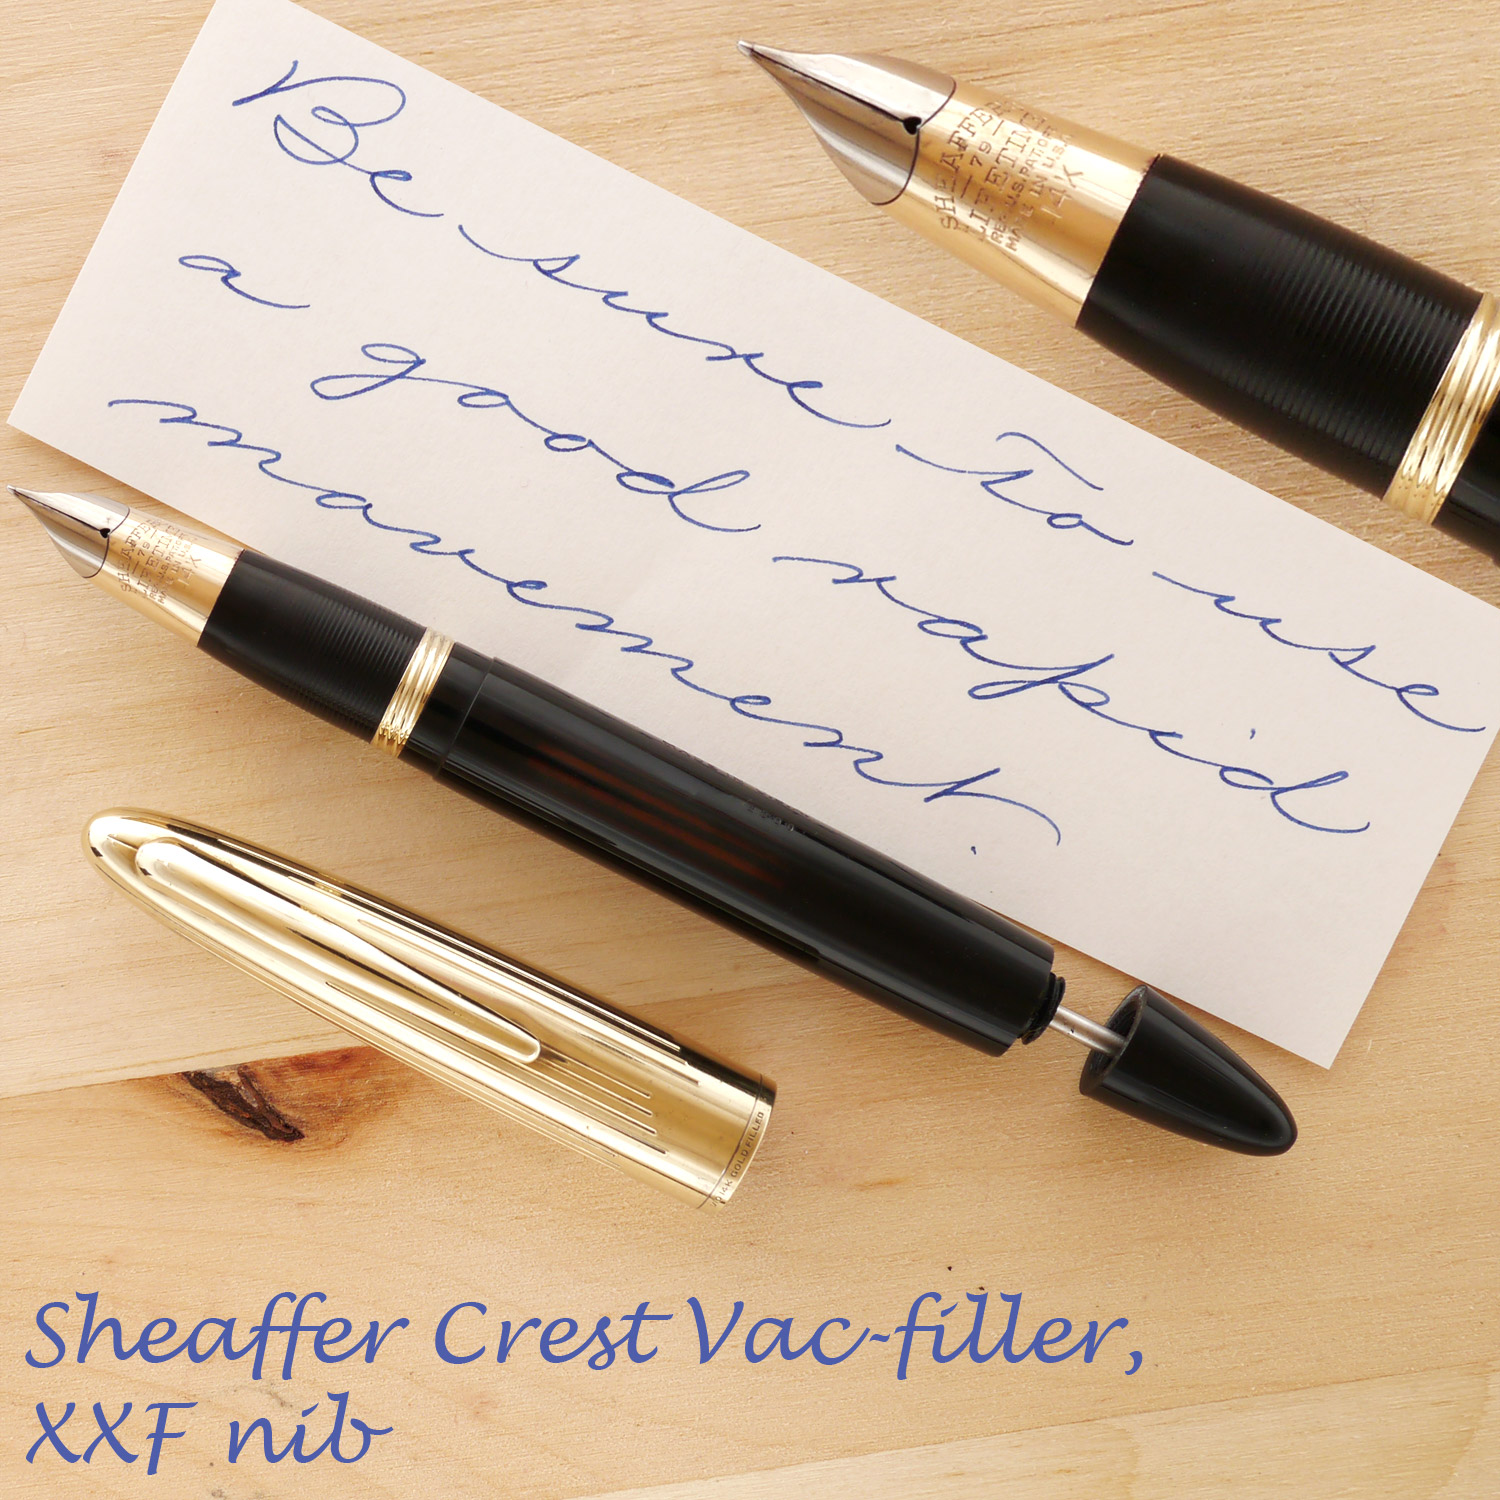 Sheaffer Crest Vac Black XXF, with the cap off and the plunger partially extended